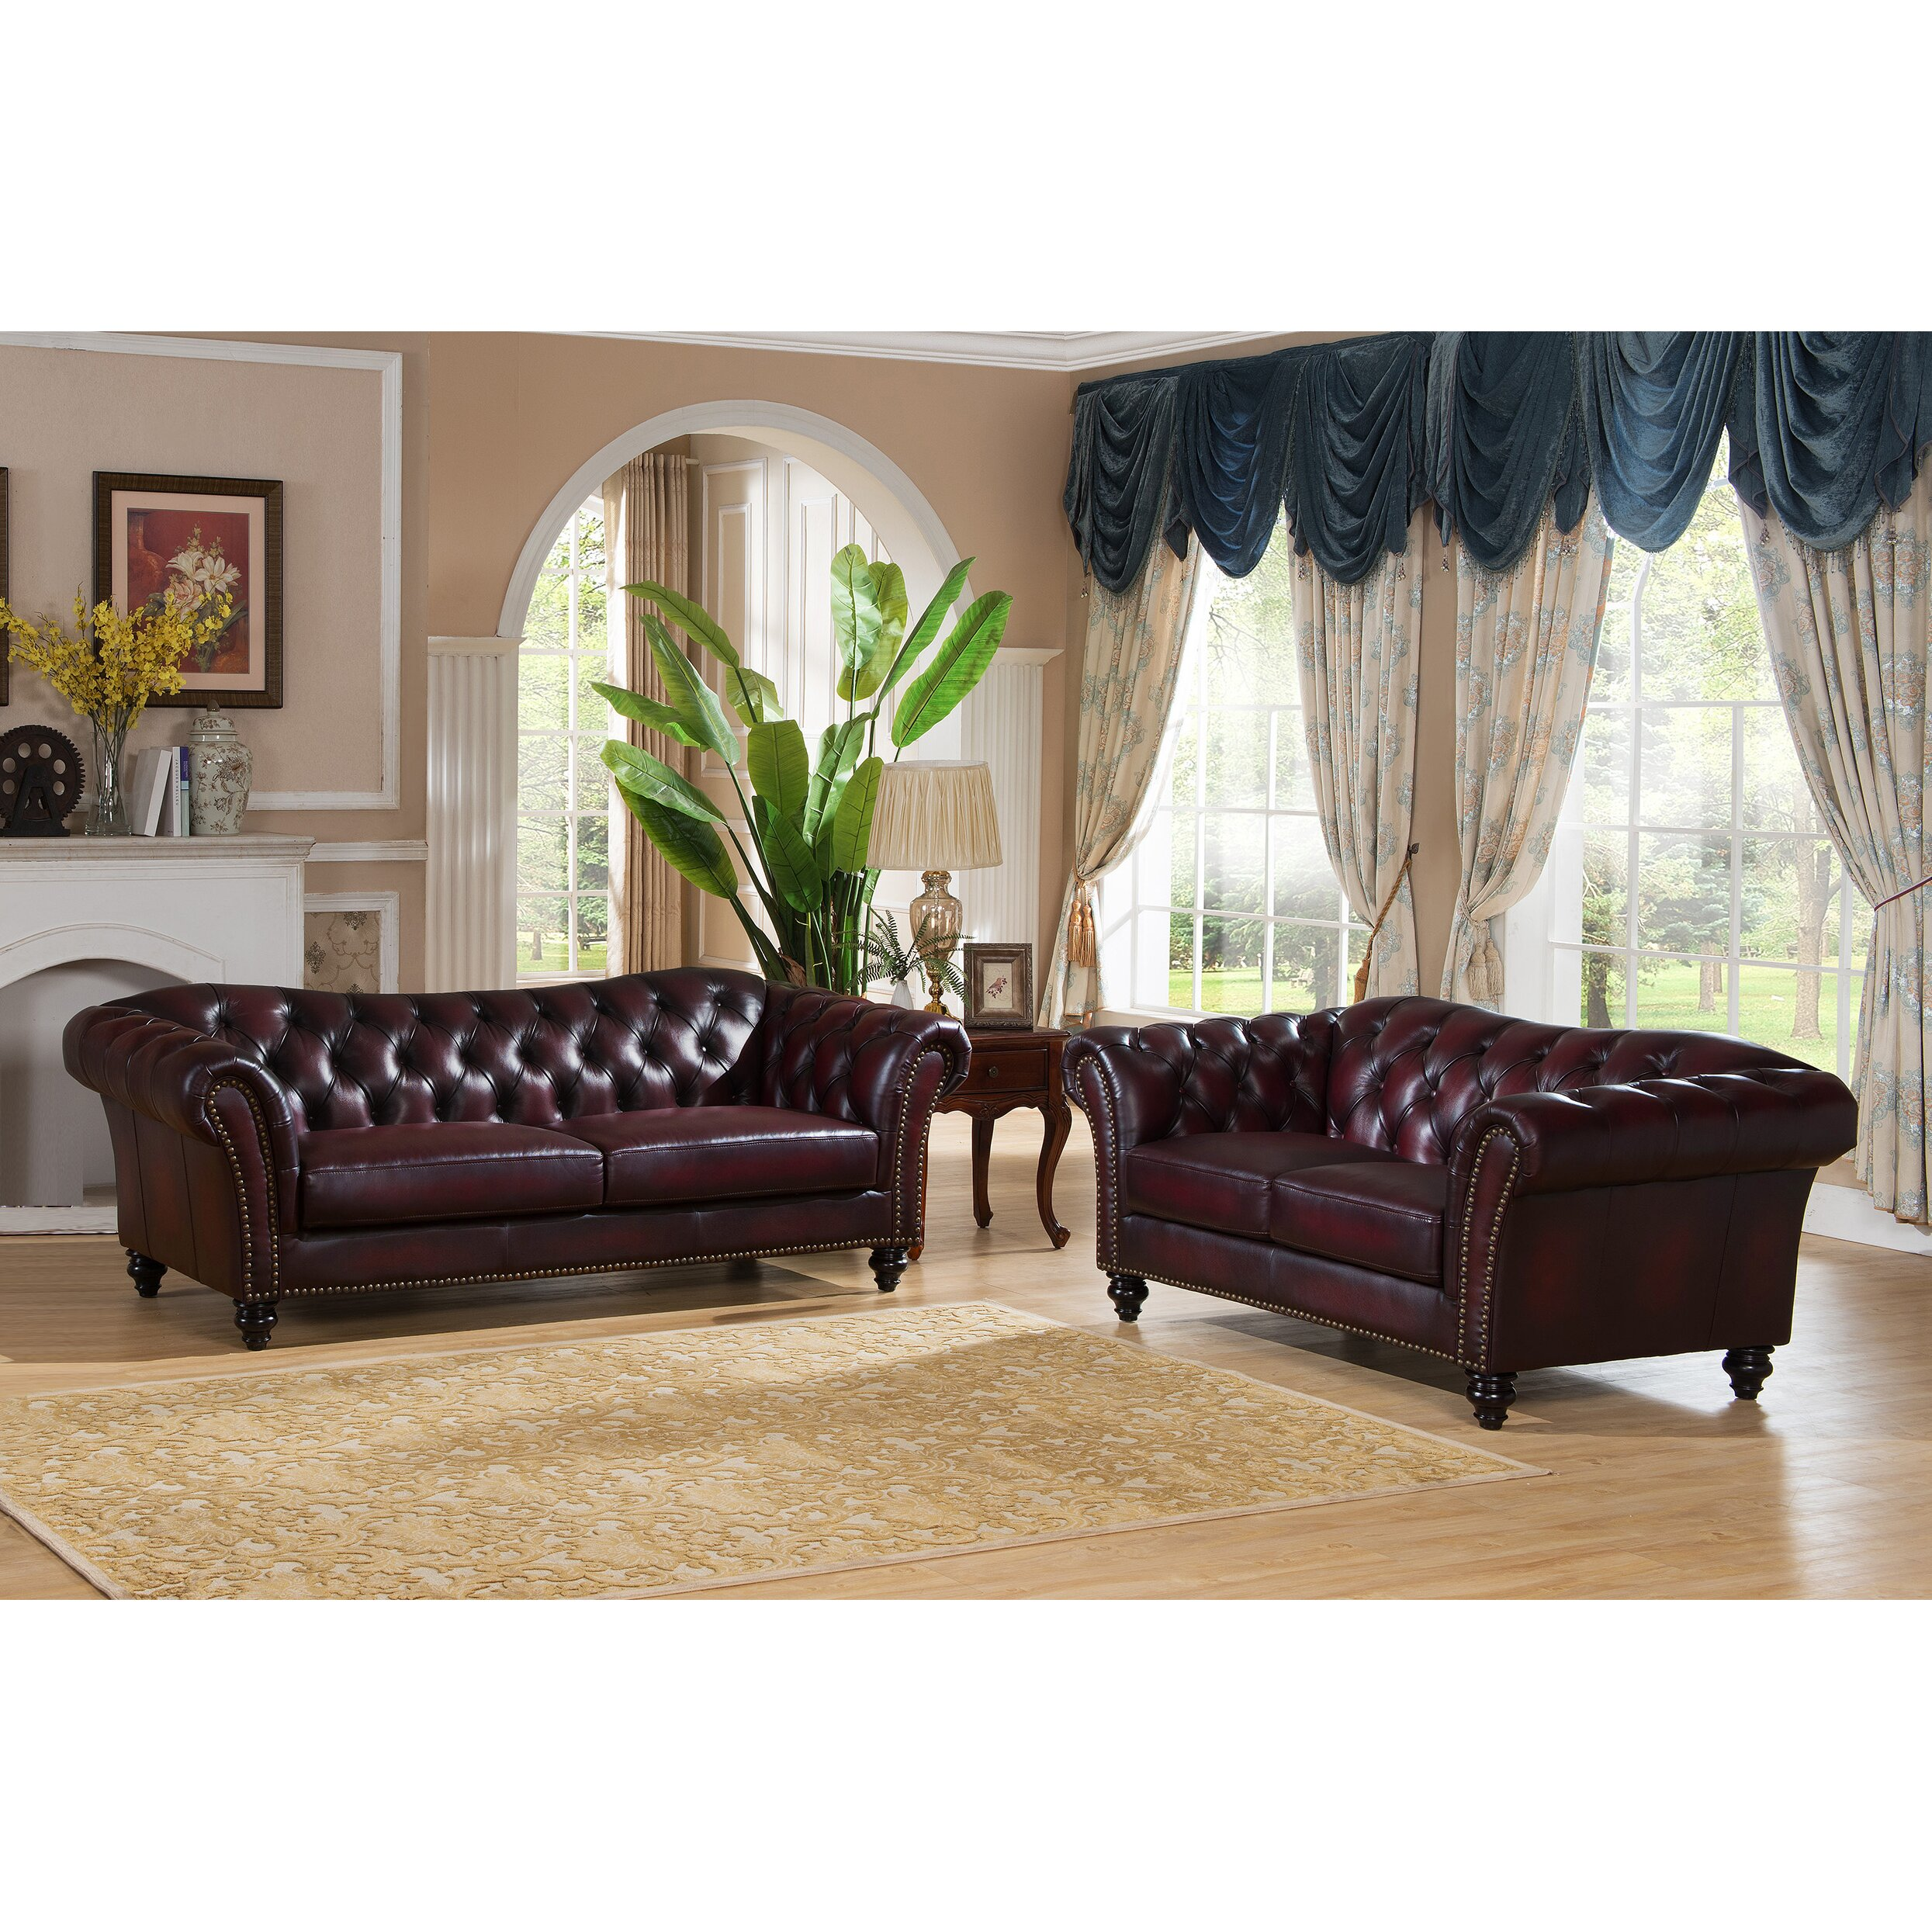 Hyde line furniture canterbury genuine leather 2 seater for Xavier sectional sofa